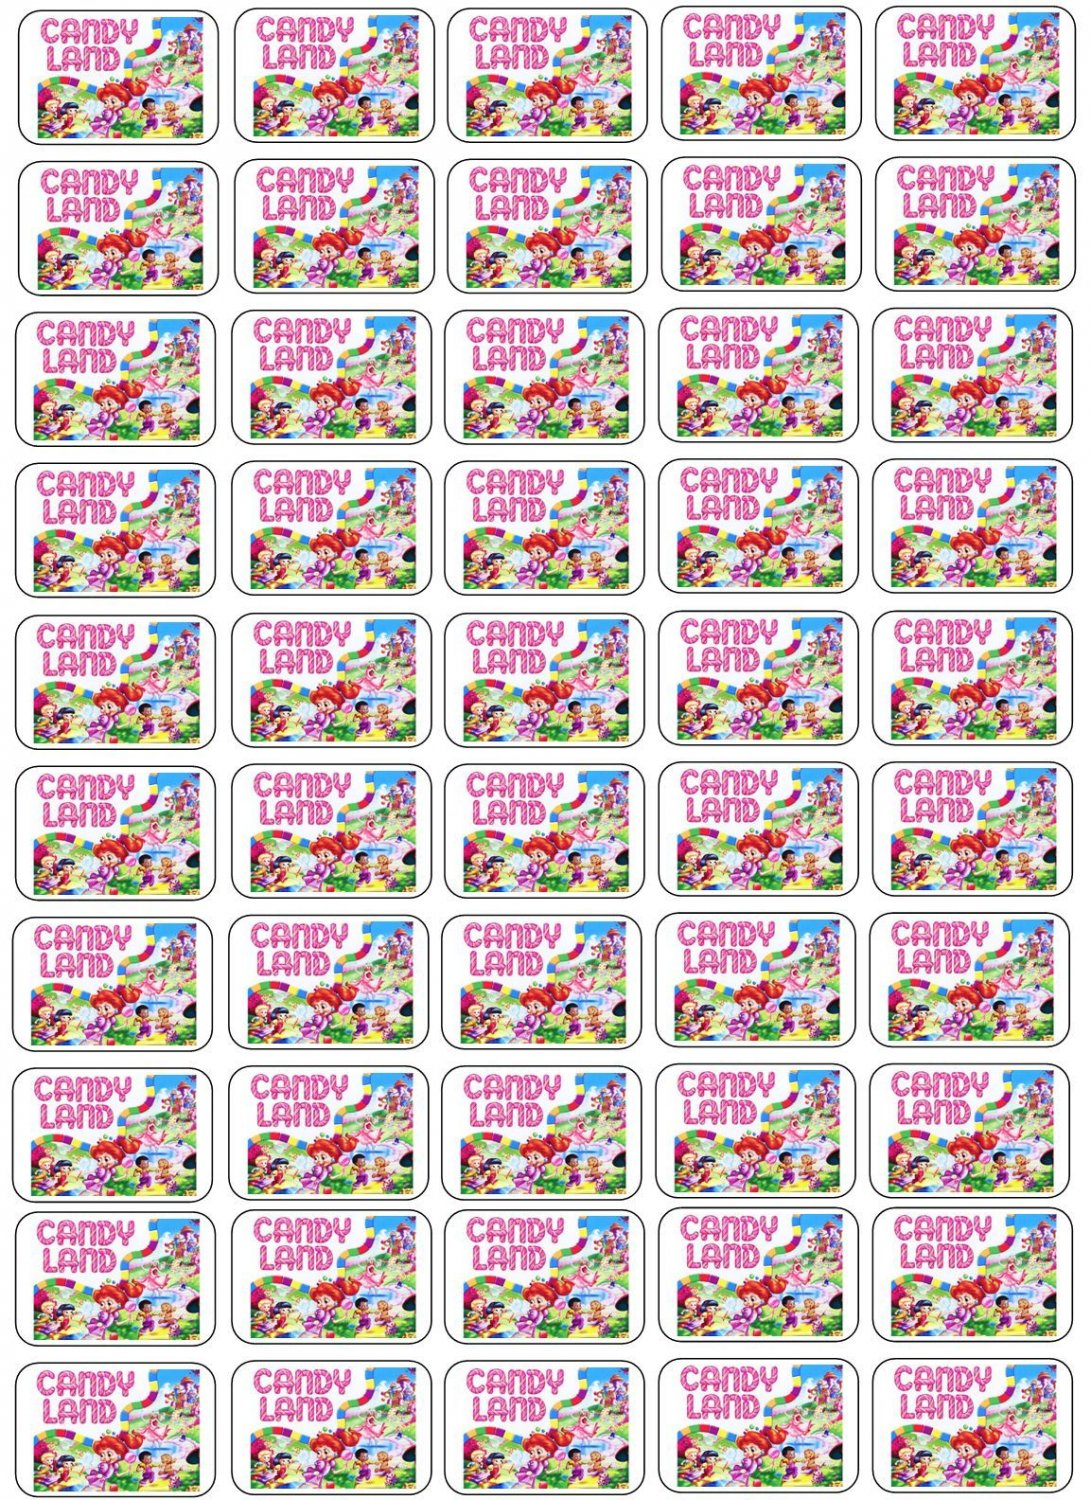 """50 Candy Land Envelope Seals / Labels / Stickers, 1"""" by 1.5"""""""